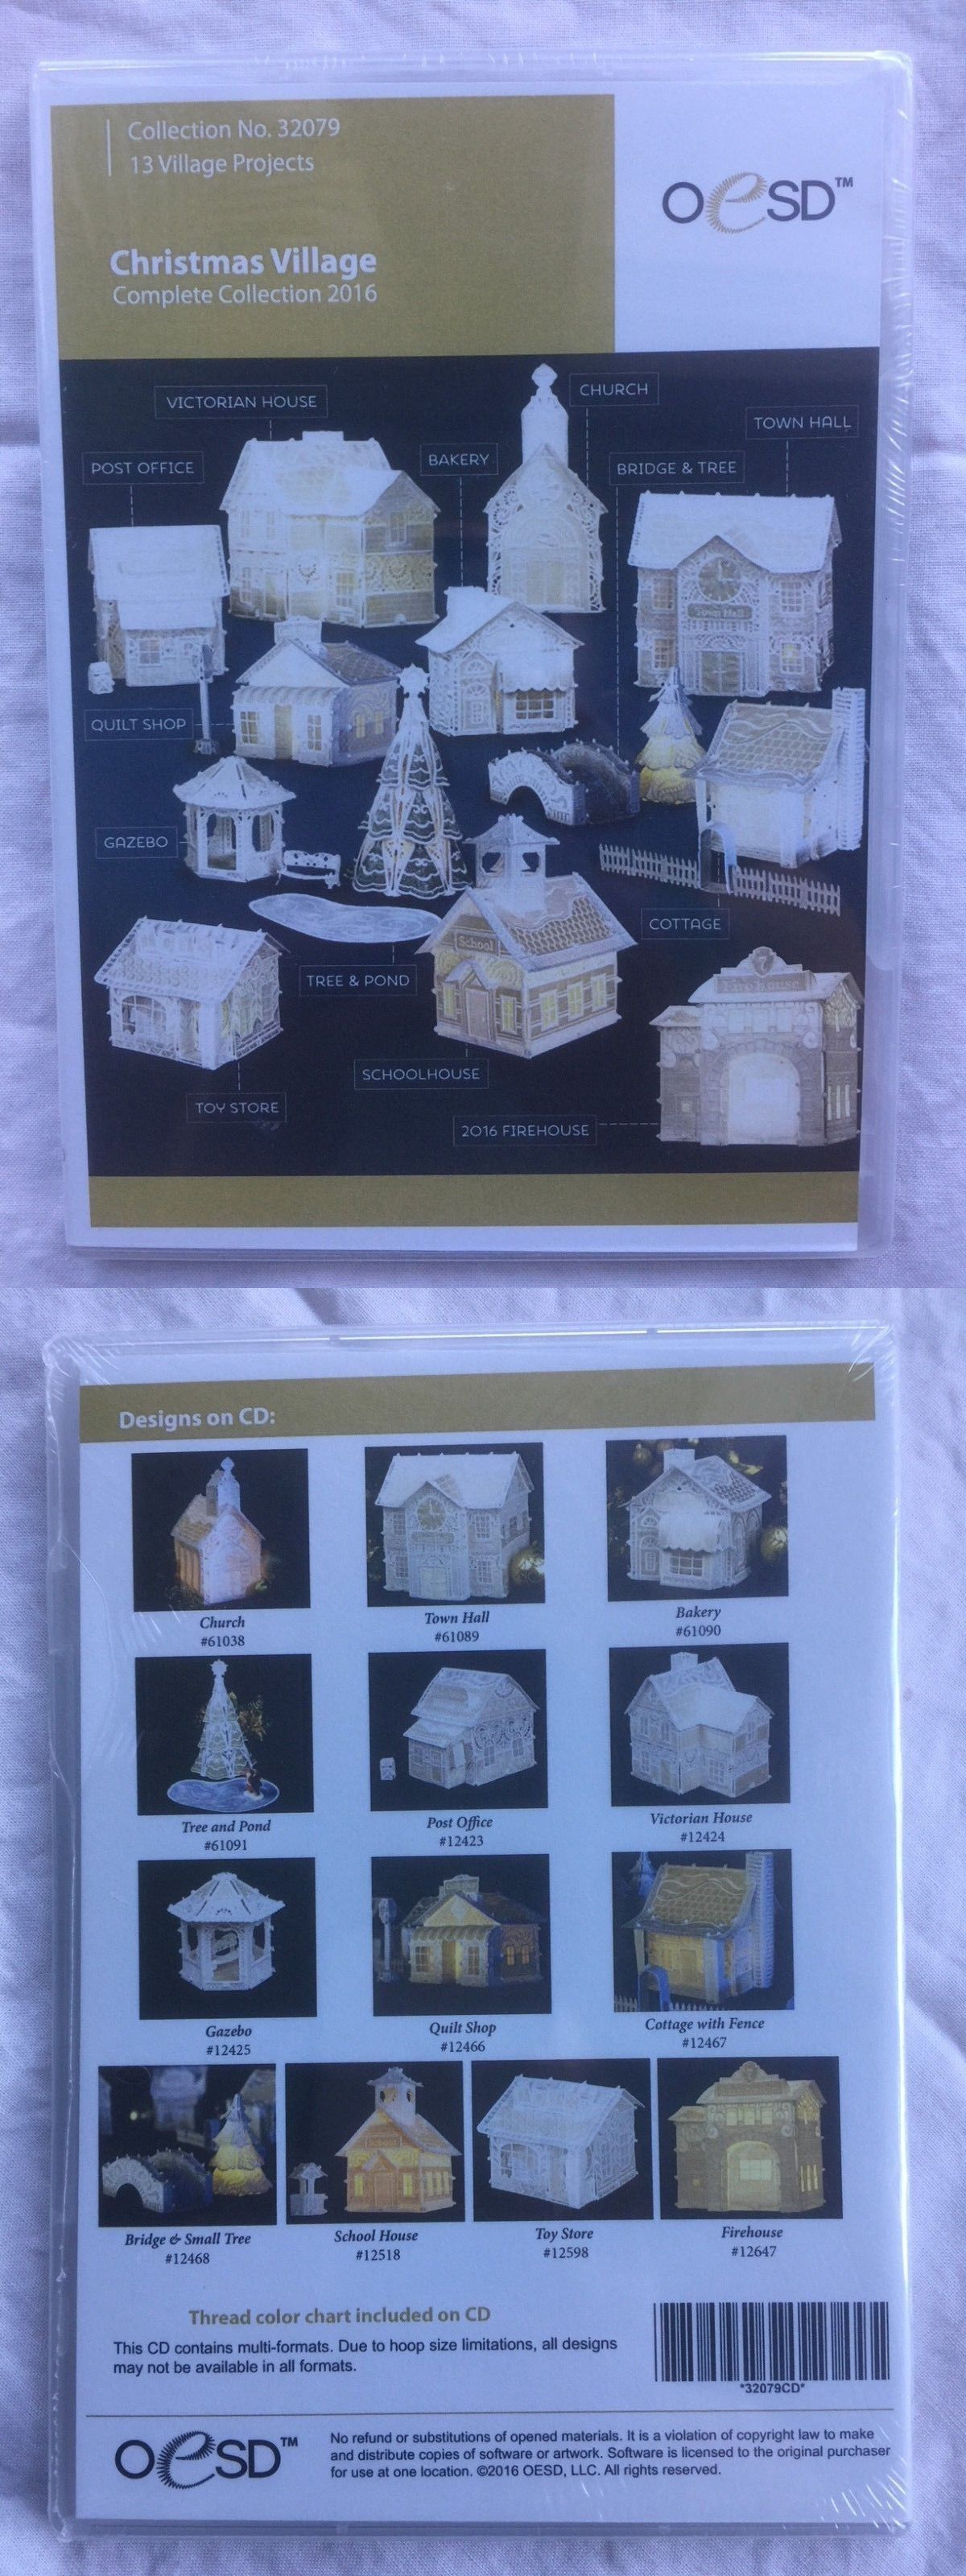 Design Cards and CDs 41383: 2016 Oesd Christmas Village Complete ...